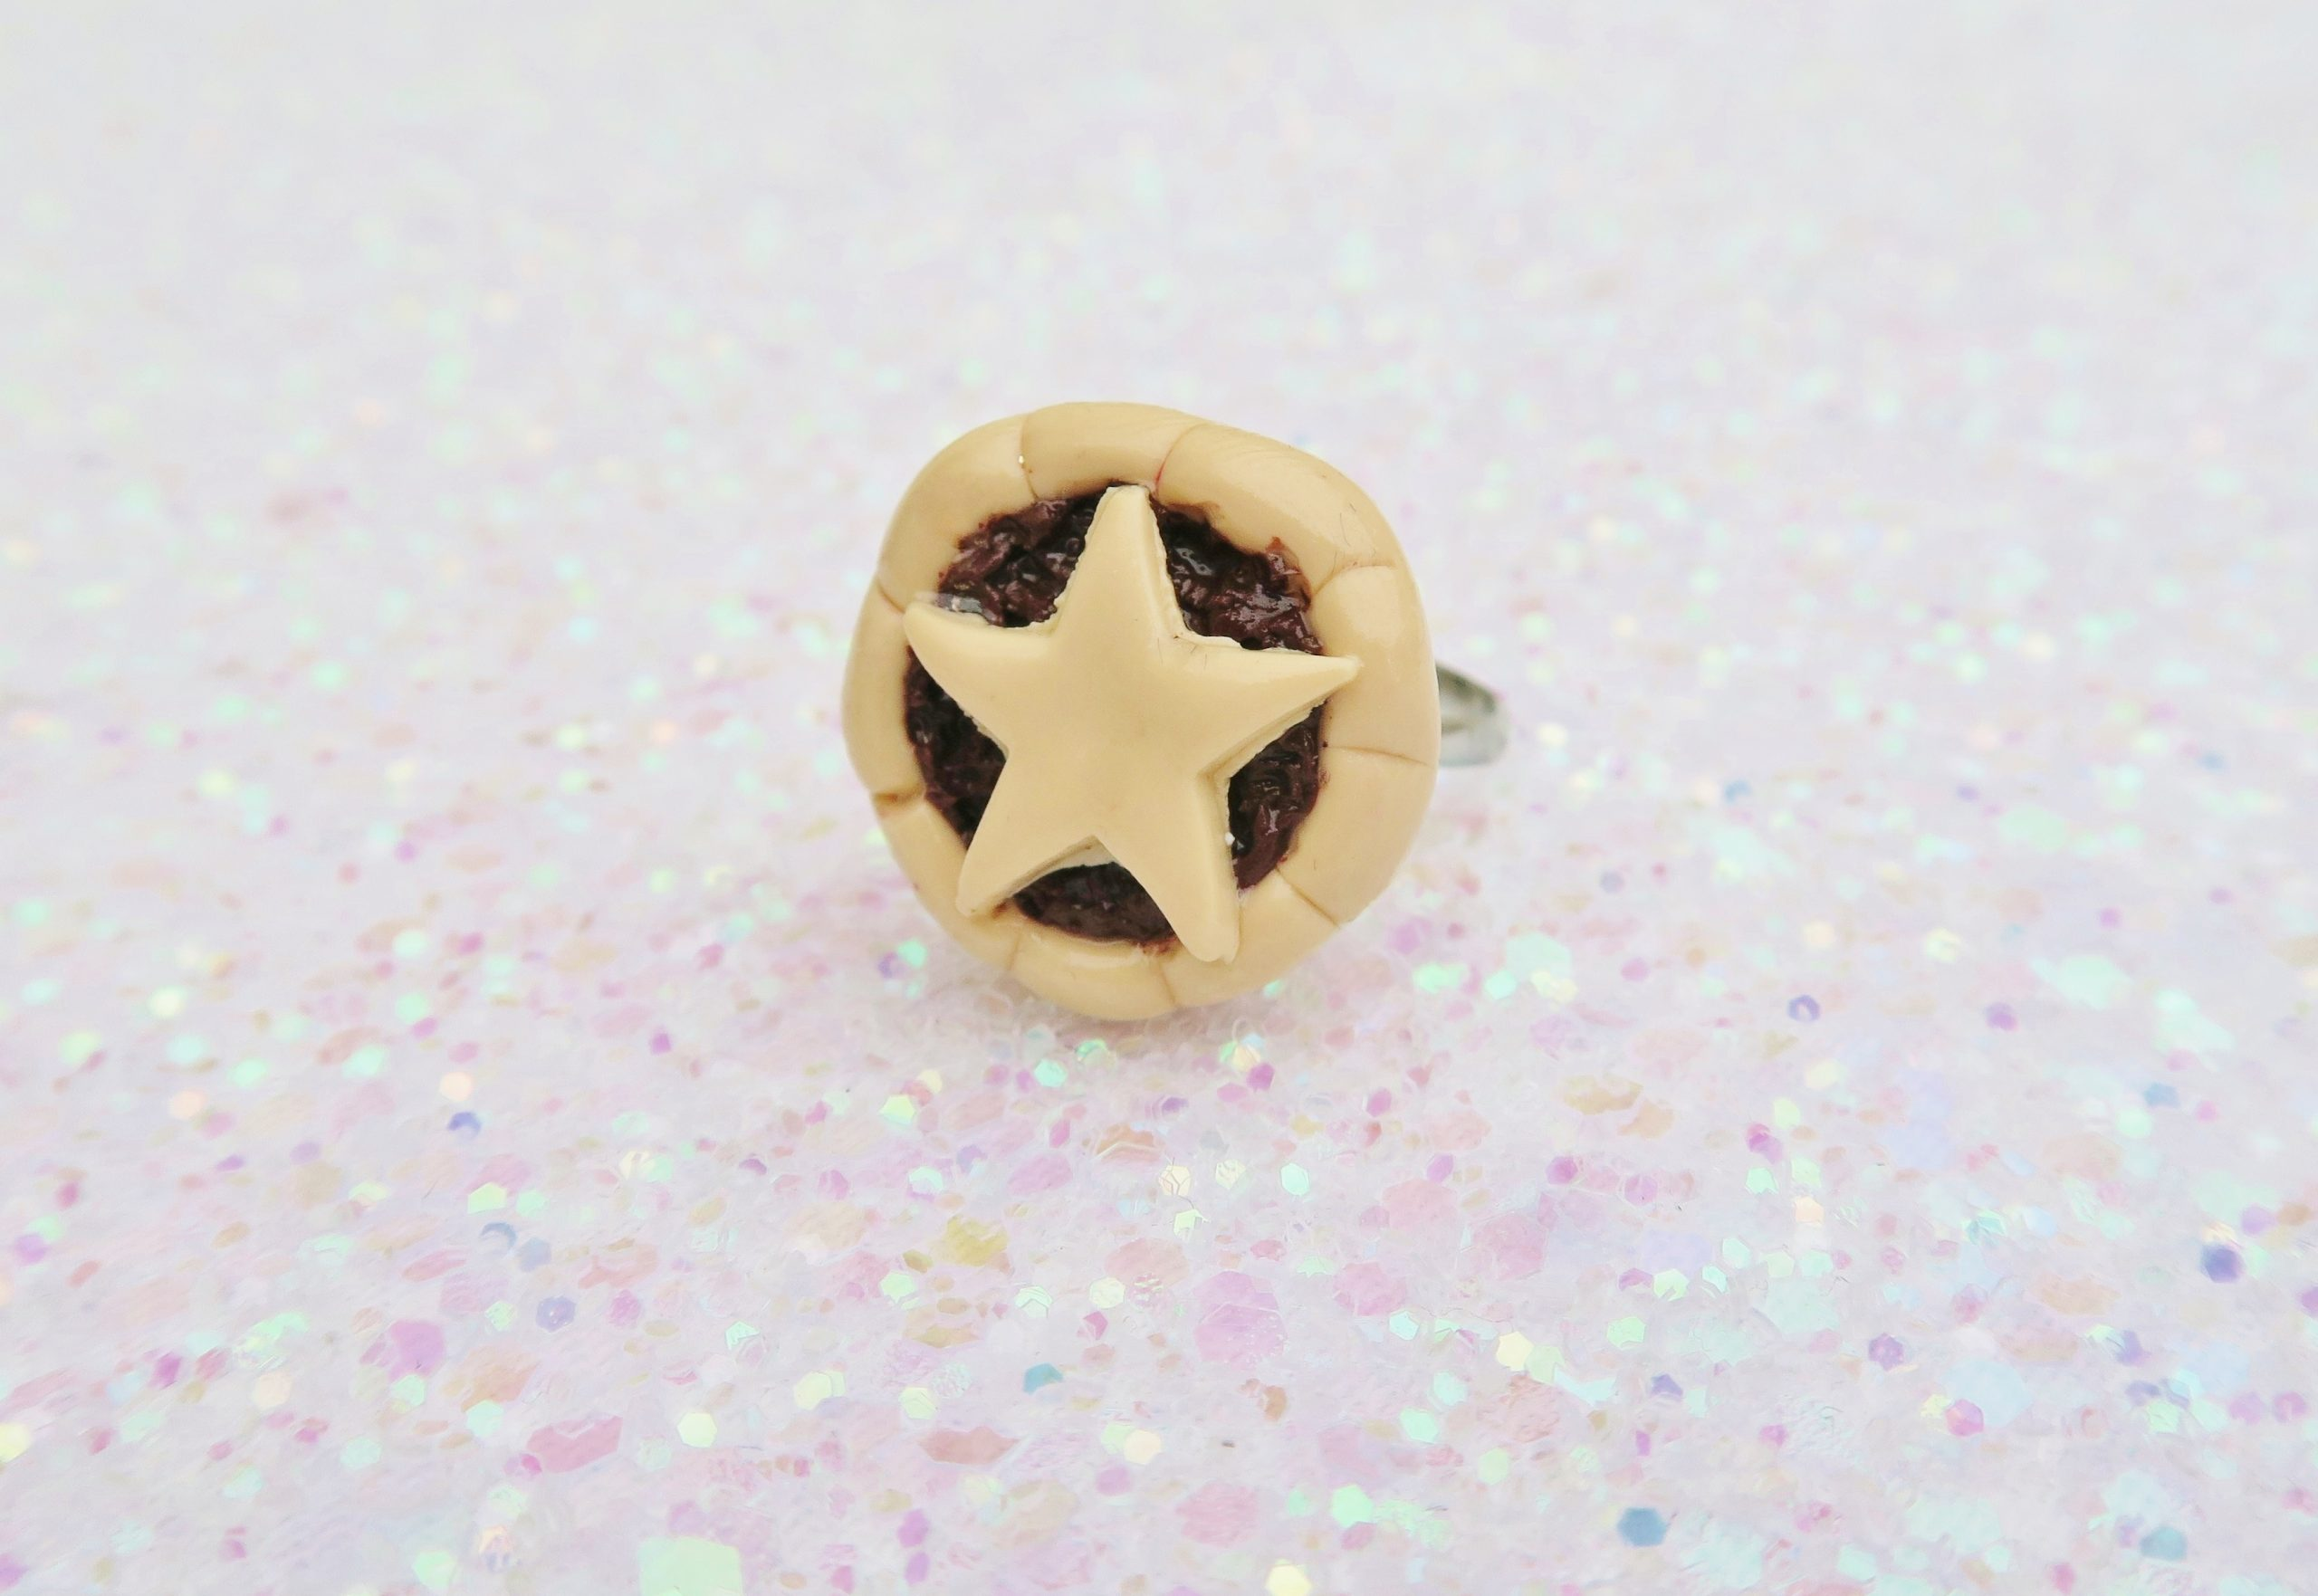 Handmade, Fimo, clay, polymerclay, jewellery, jewelry, novelty, Christmas, festive, cute, craft, gift, present, for her, mince pie, pudding, statement, ring,